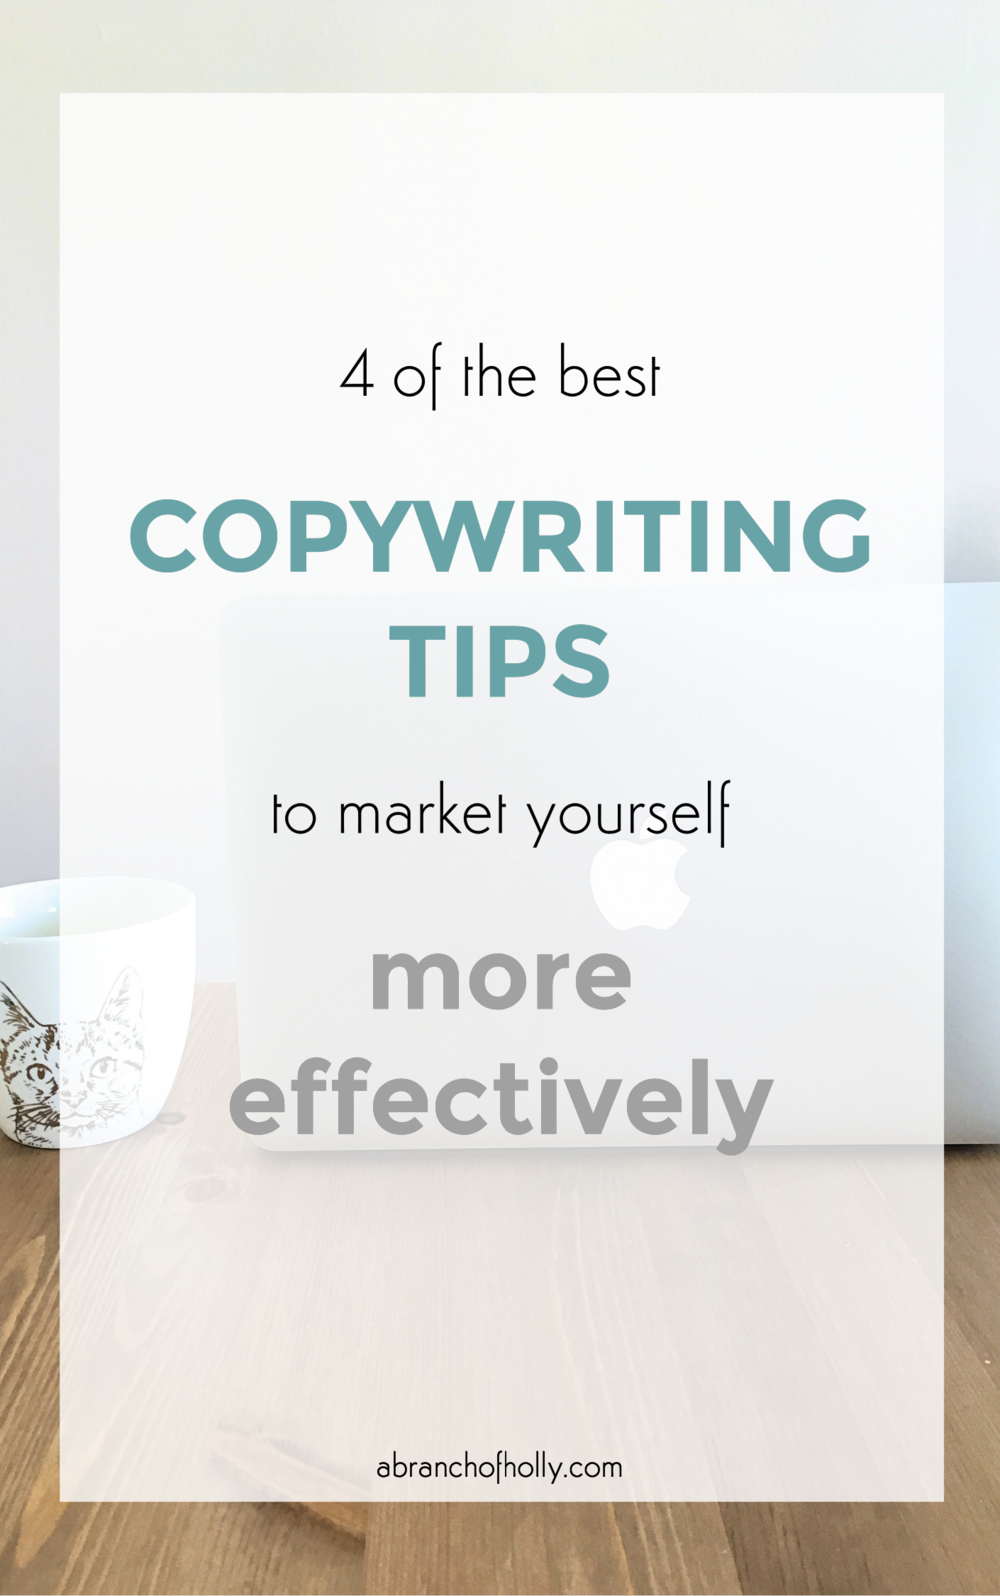 copywriting tips to market yourself more effectively